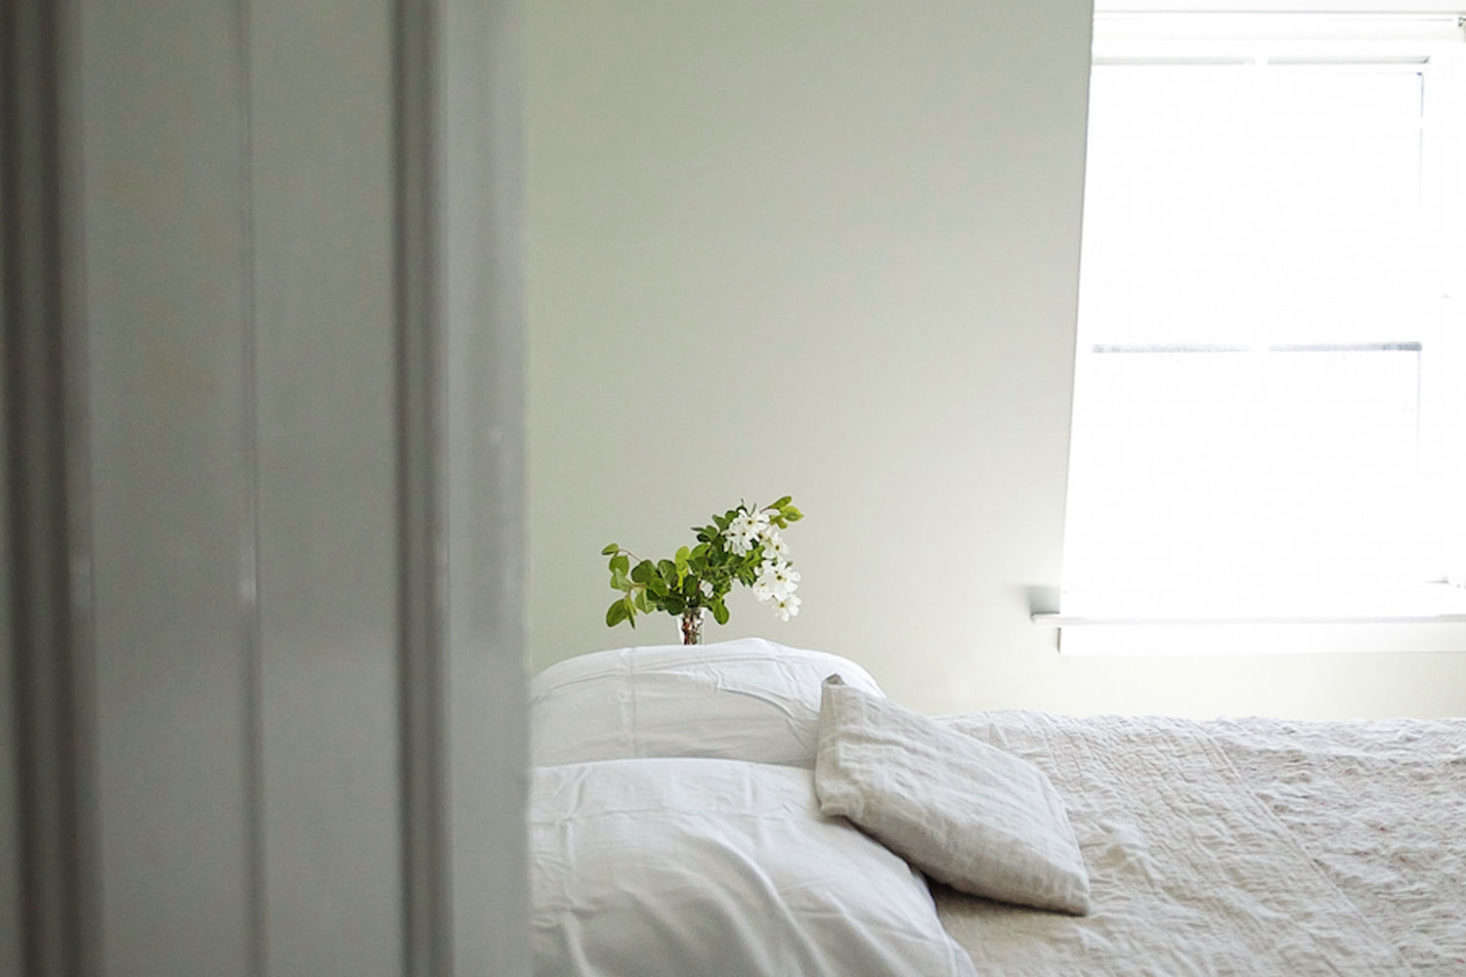 The summer bedroom, breeze included. Photograph by Justine Hand.